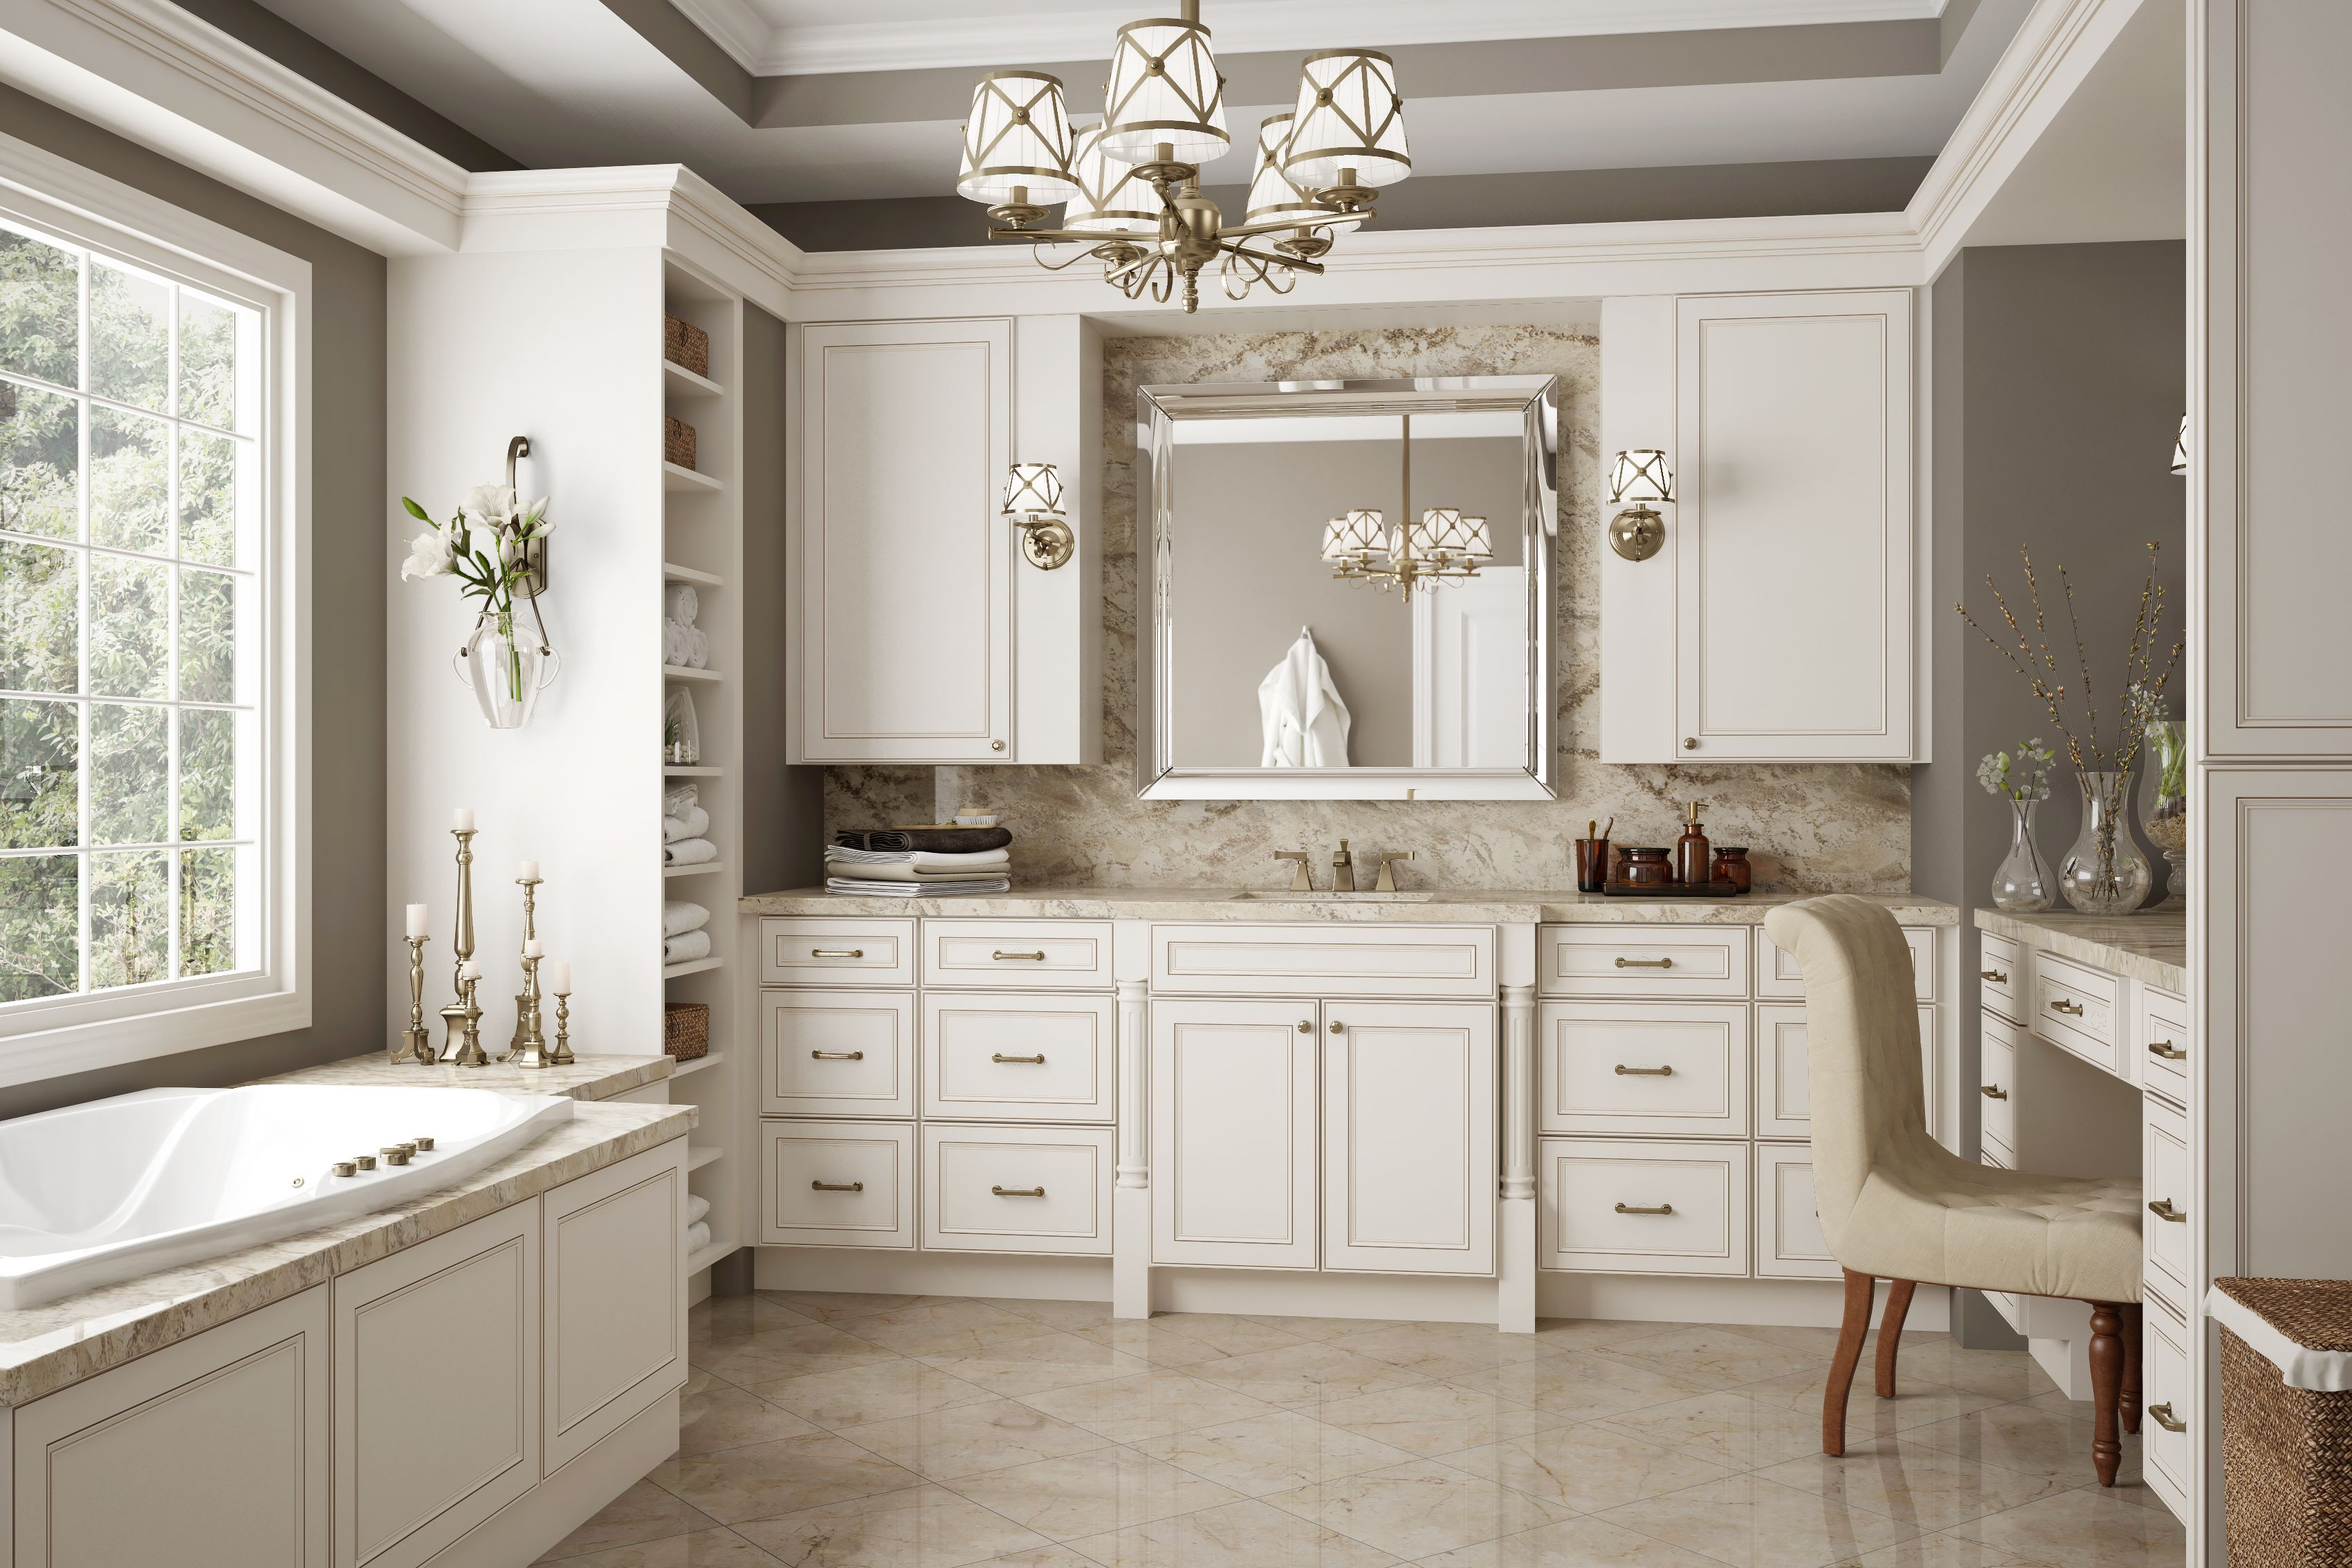 Awesome Get Inspired Update Your Bathroom For The Spring Season At Download Free Architecture Designs Intelgarnamadebymaigaardcom